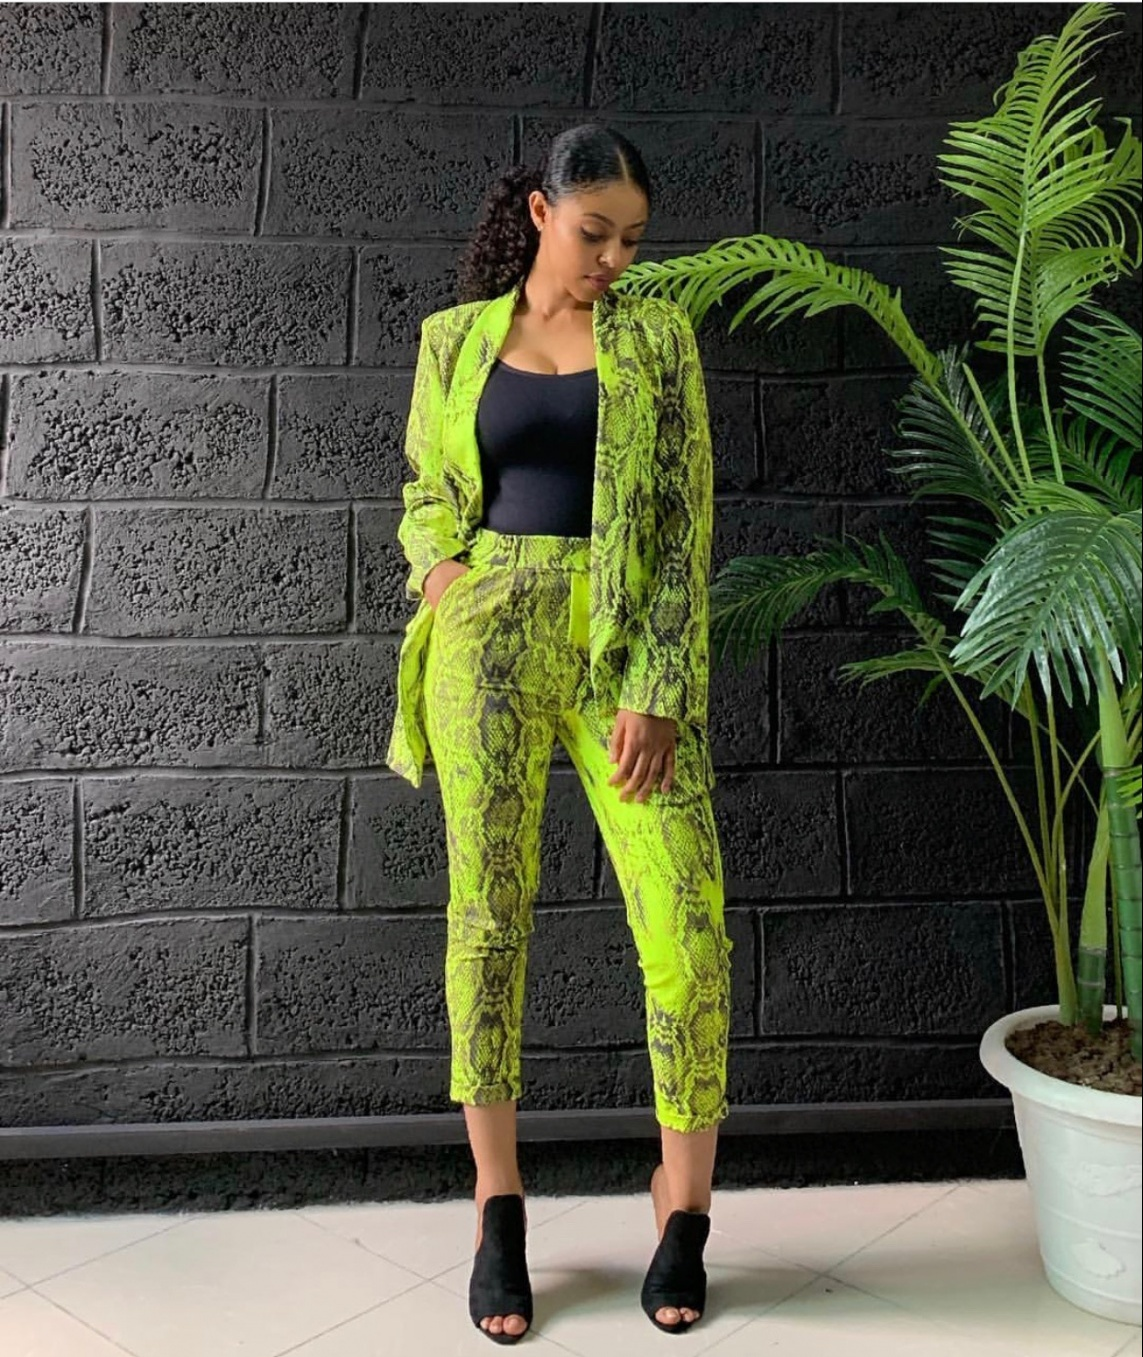 Image of a lady wearing a neon green print suit